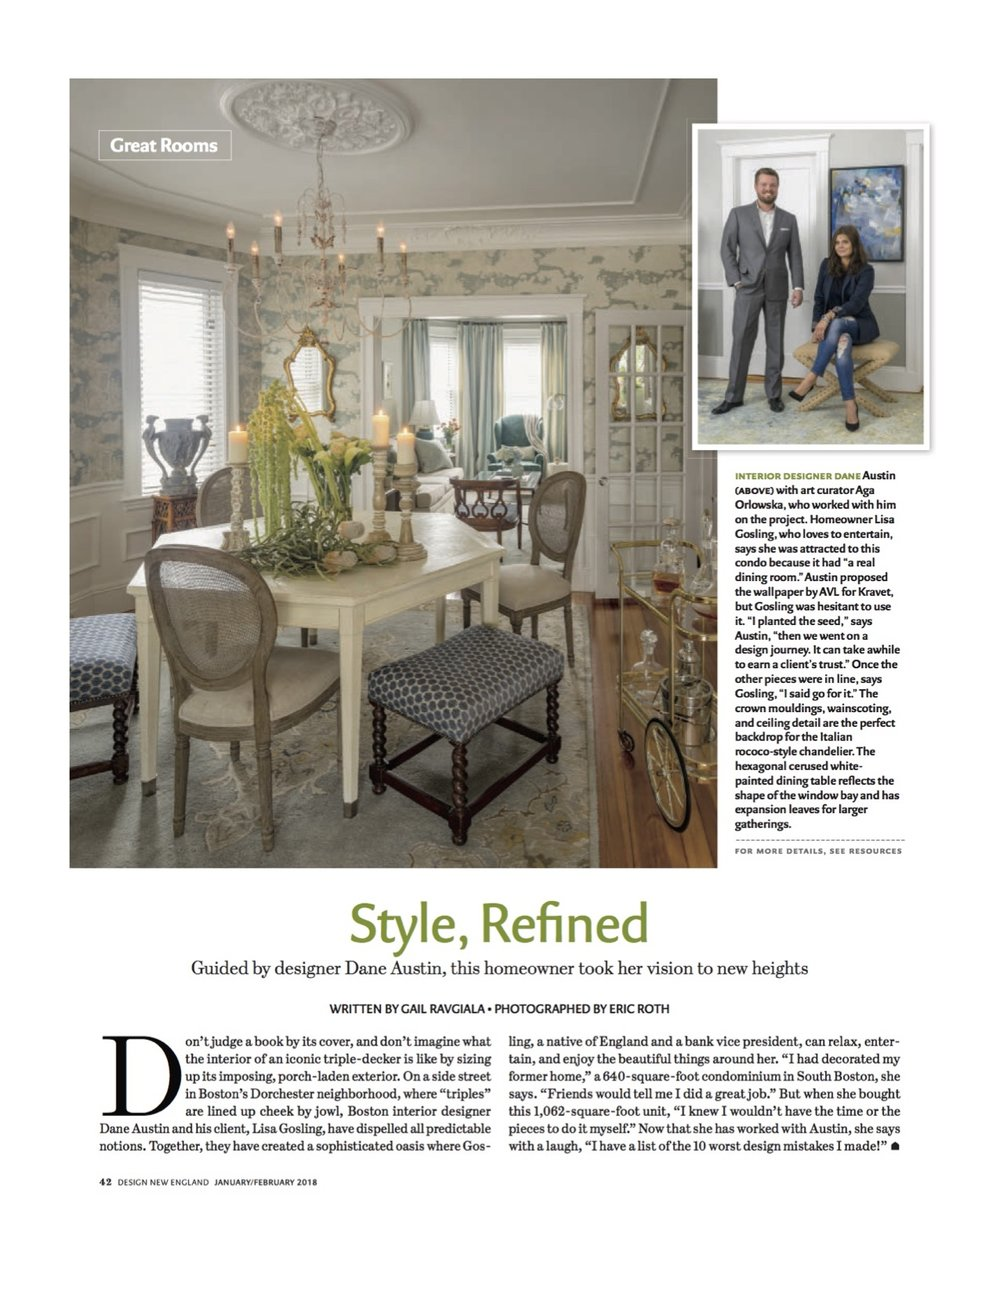 Style, Refined. Design New England Magazine January- February 2018 issue